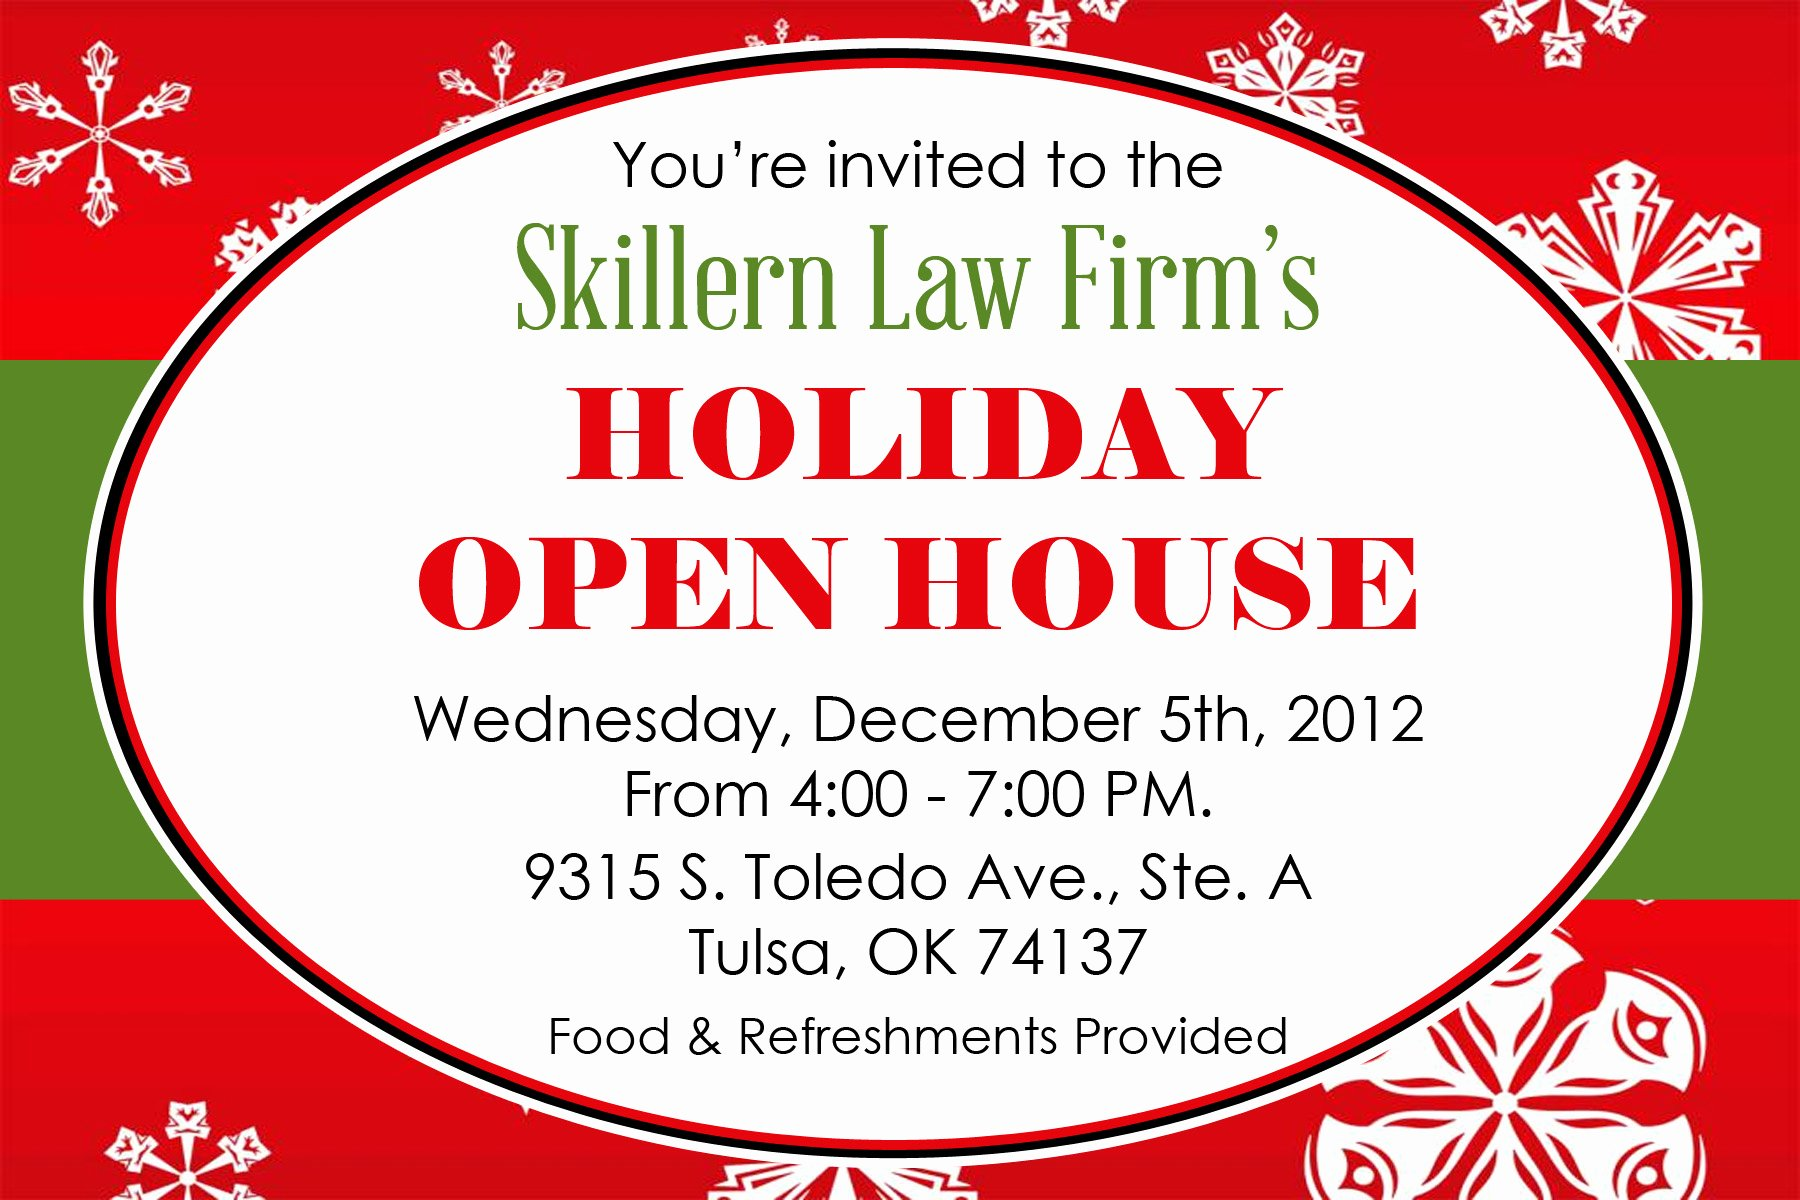 Holiday Open House Invitations Beautiful Holiday Open House Skillern Law Firm Pllc